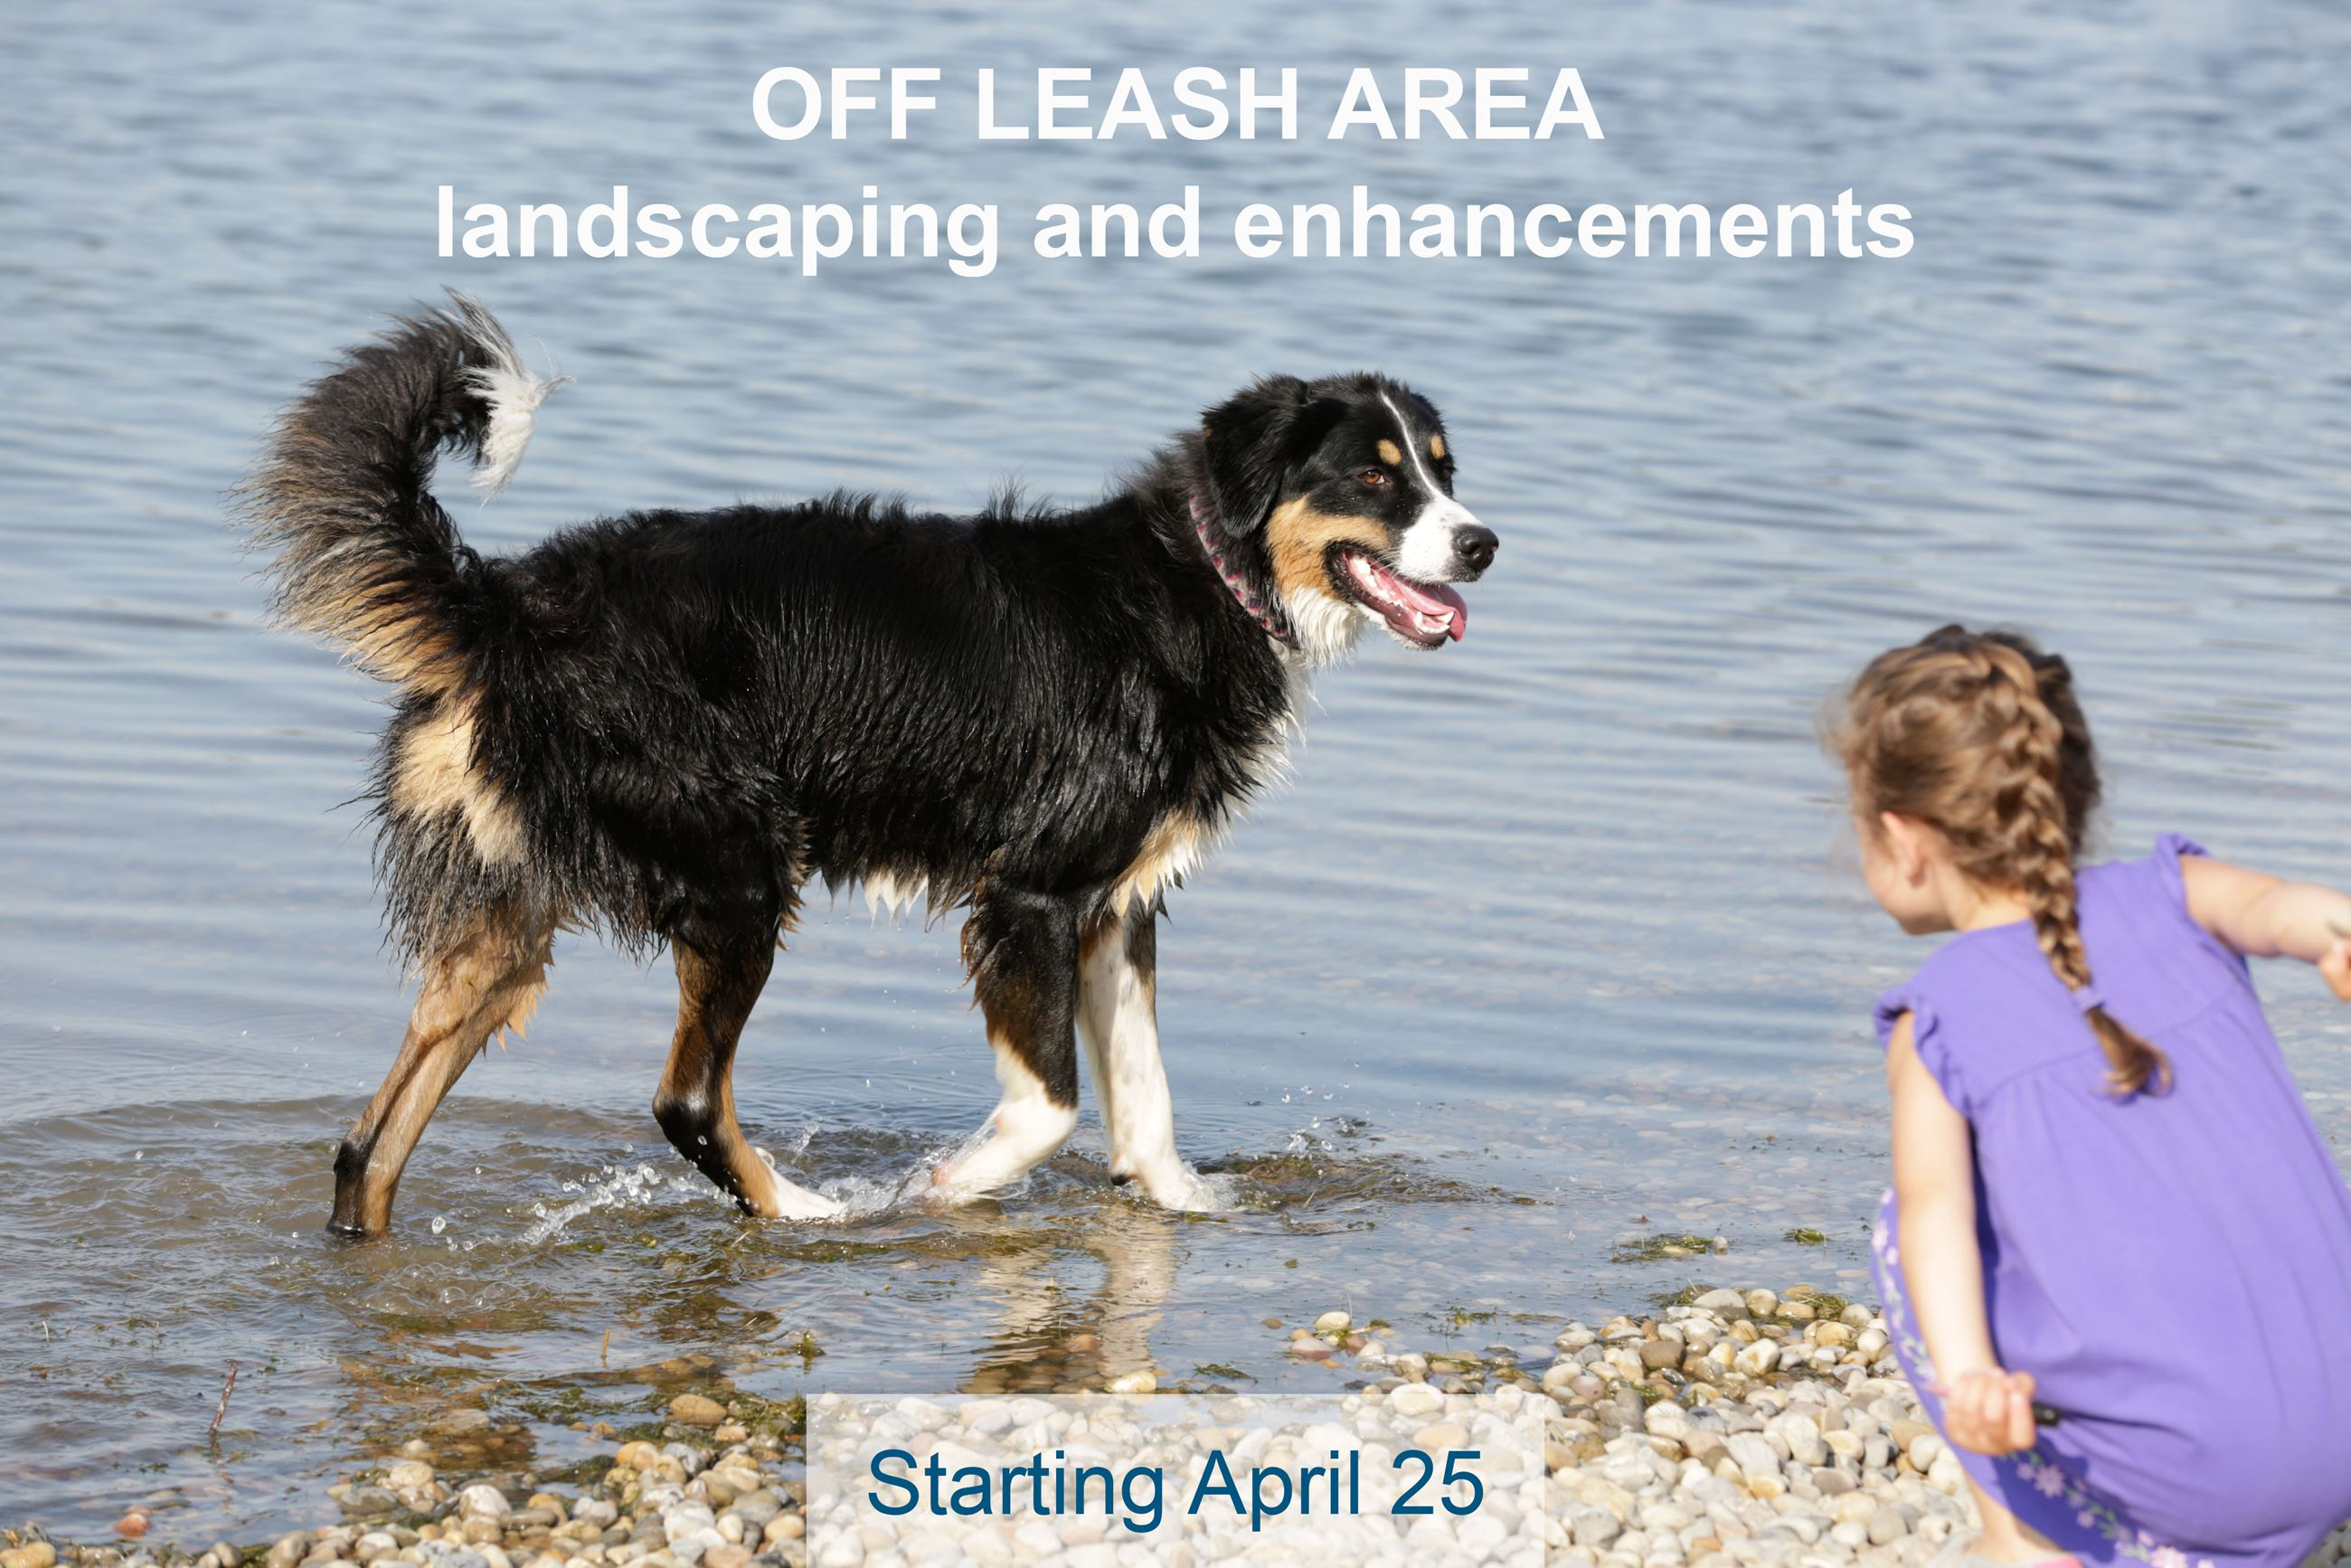 Off leash image